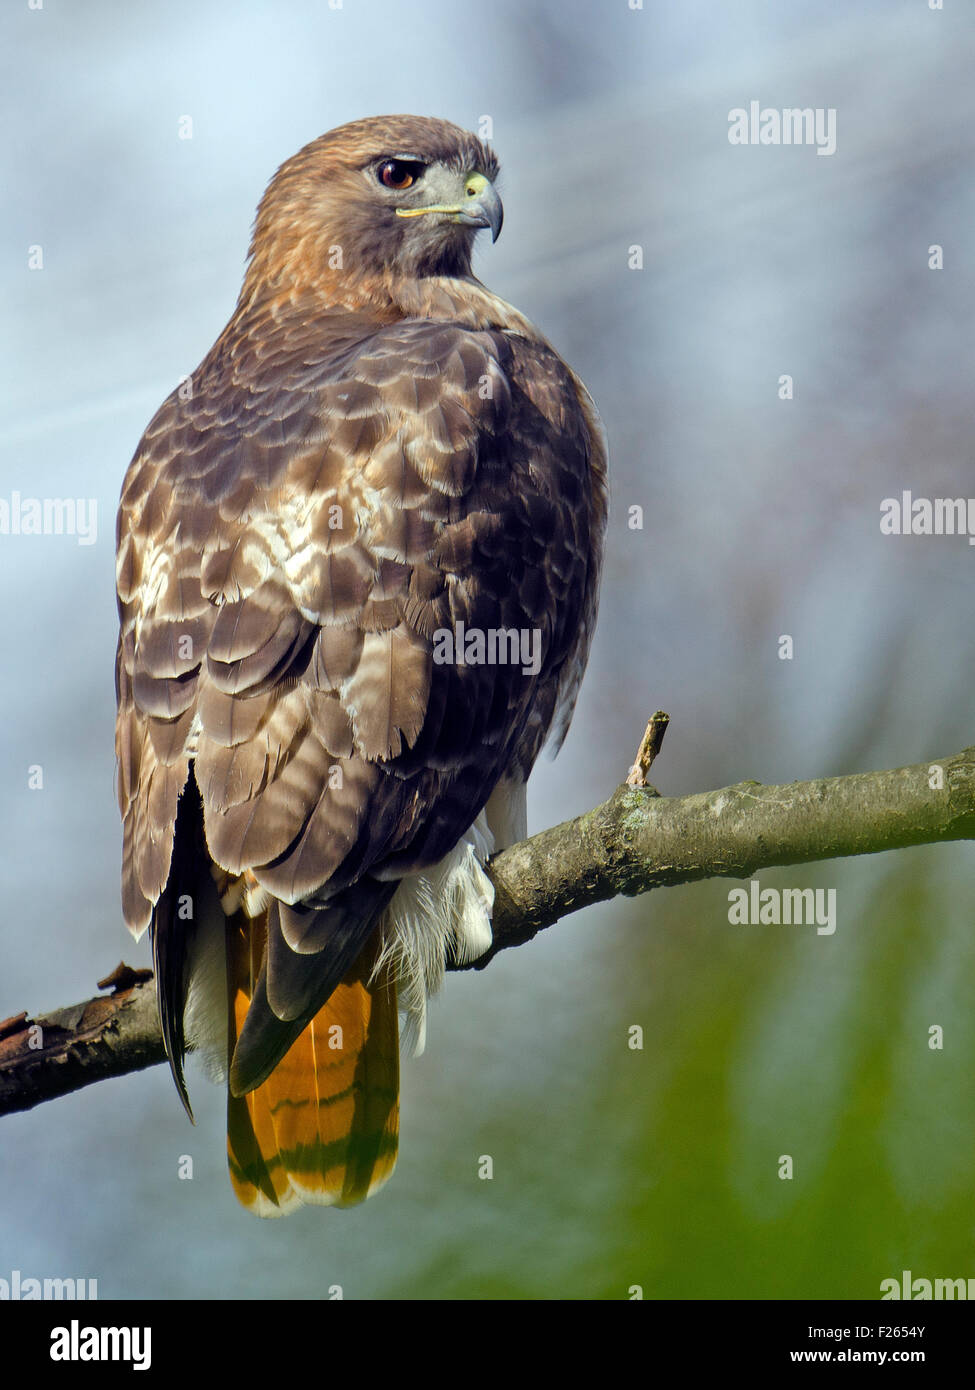 Red-tailed Hawk on Branch - Stock Image